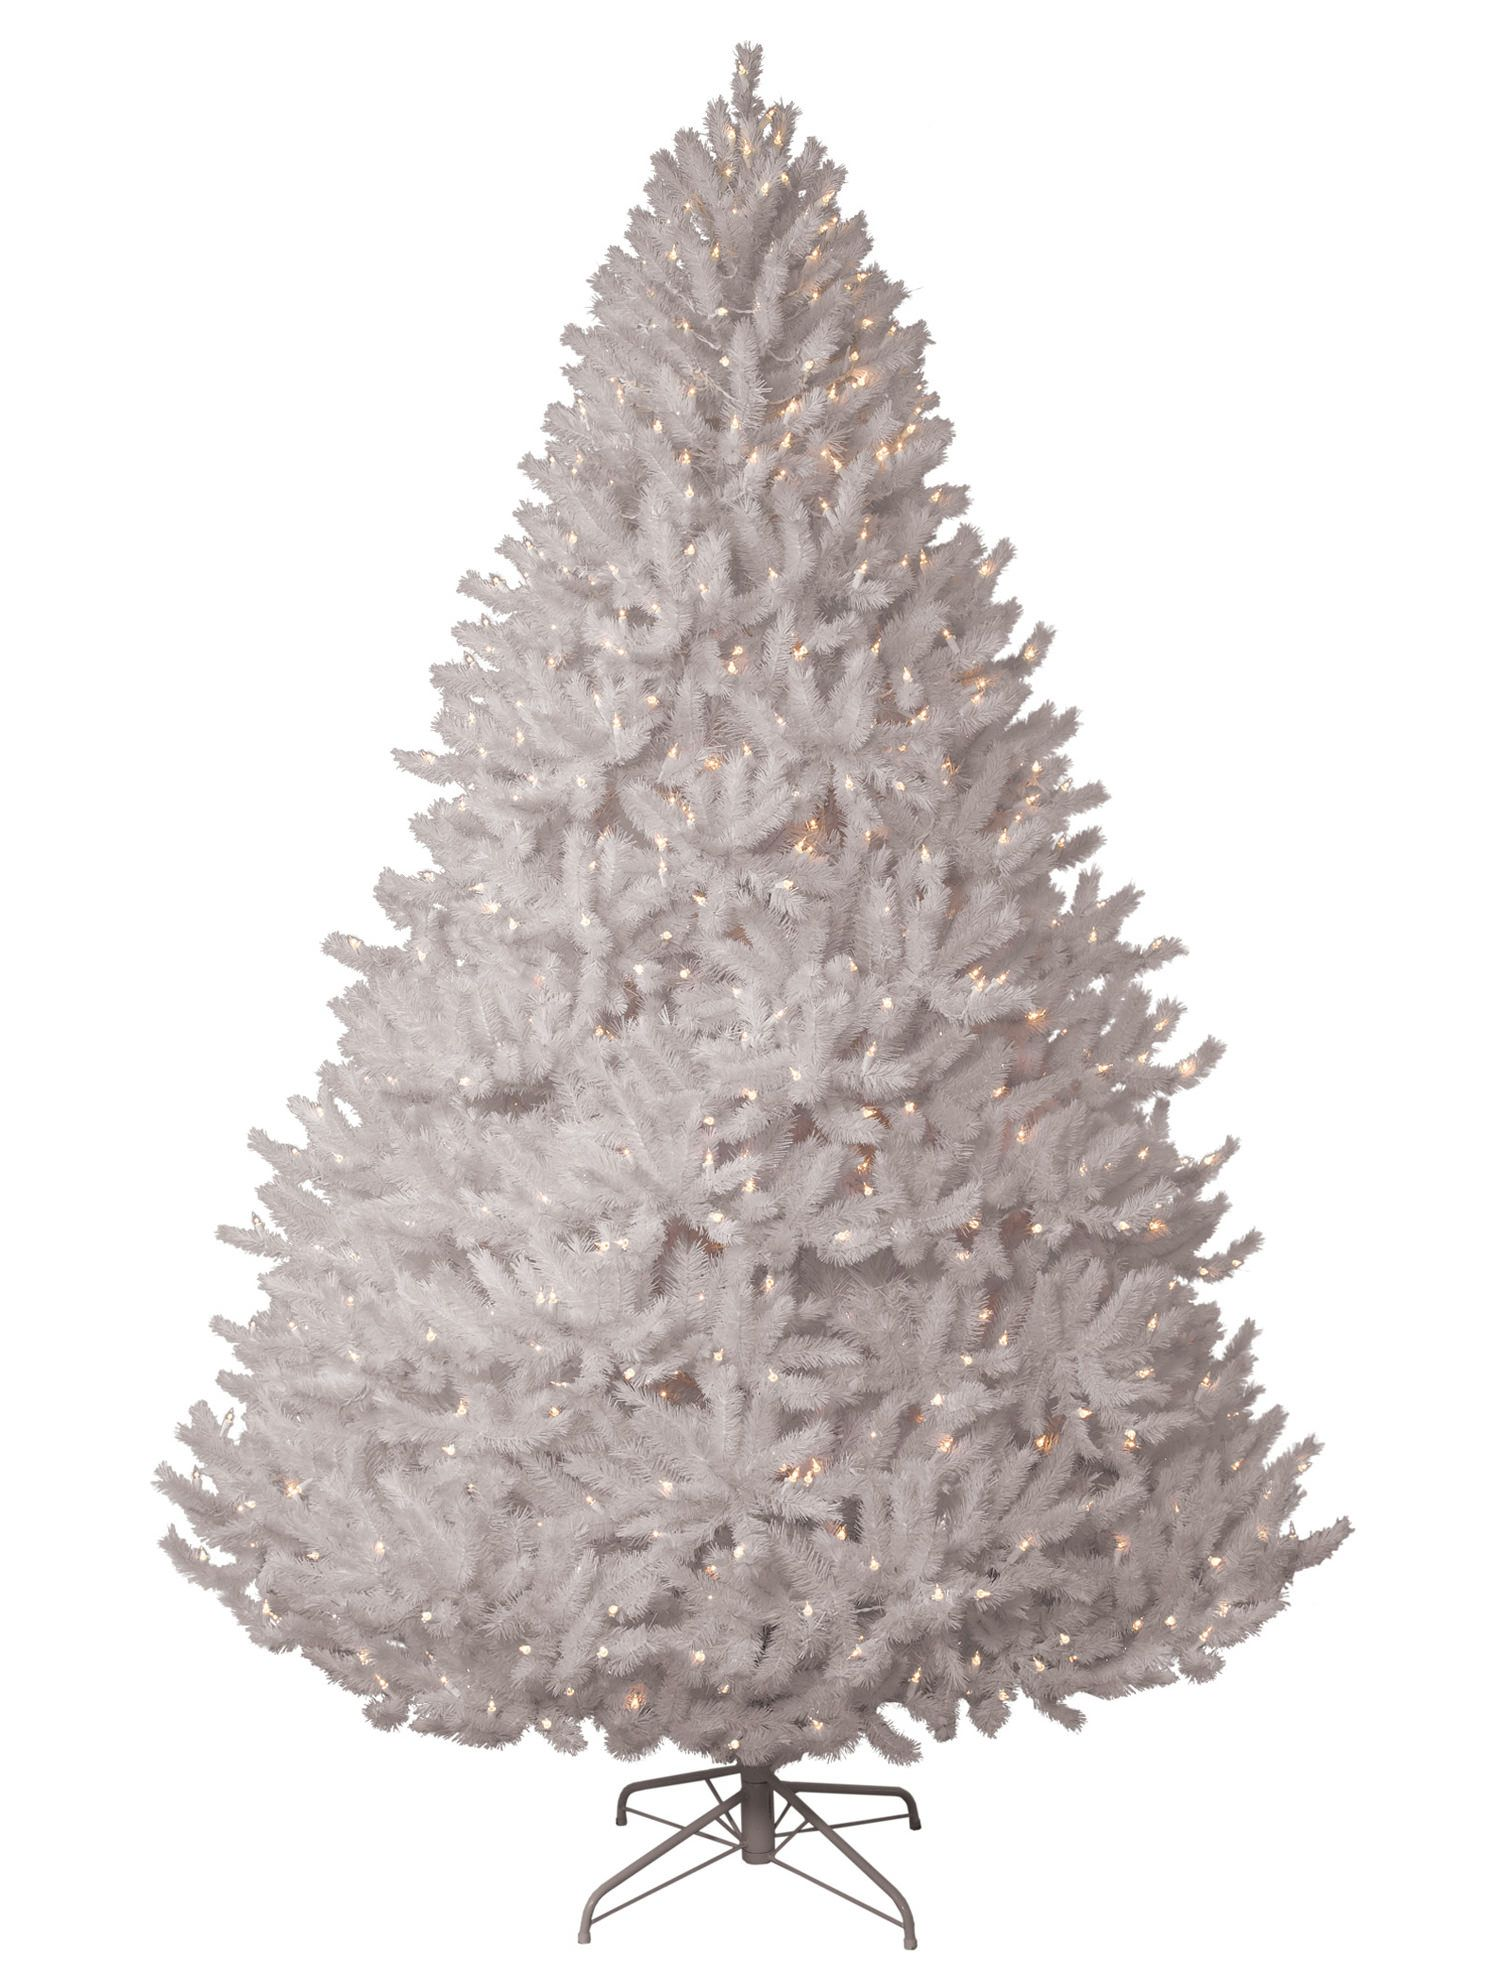 Buy Pikes Peak White Artificial Christmas Trees Online | Balsam ...